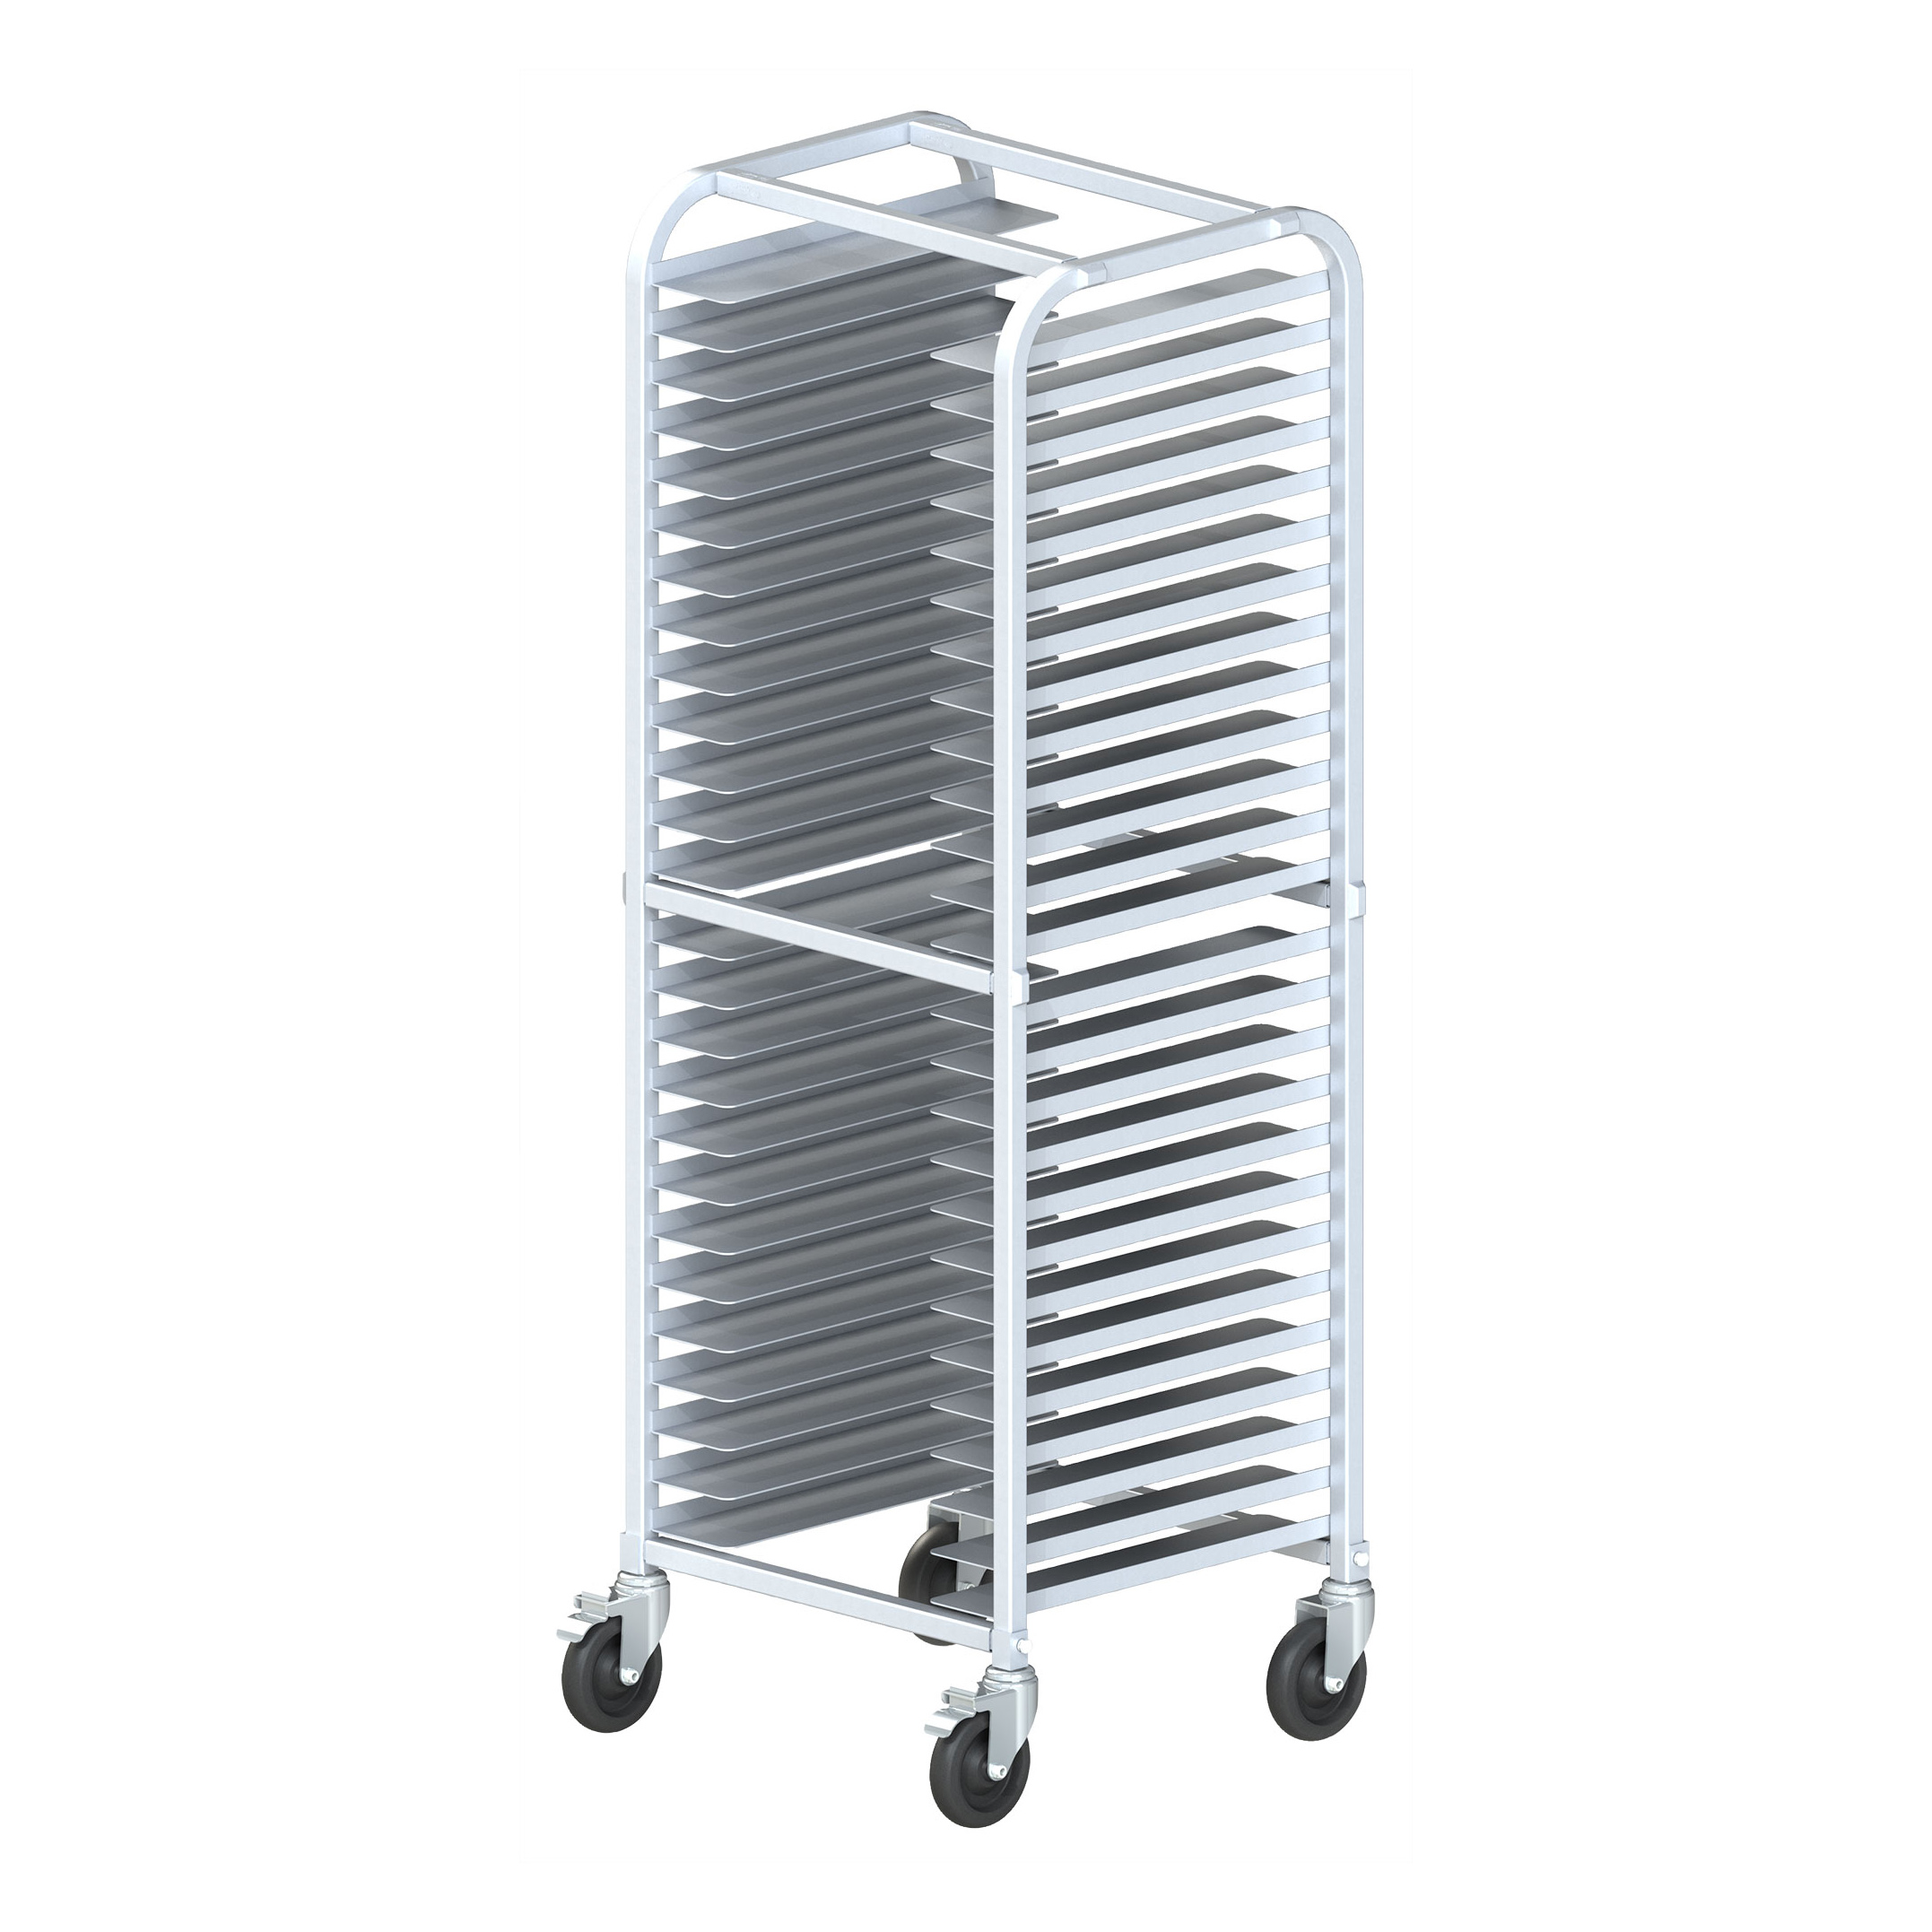 Winco ALPR-26BK pan rack, pizza